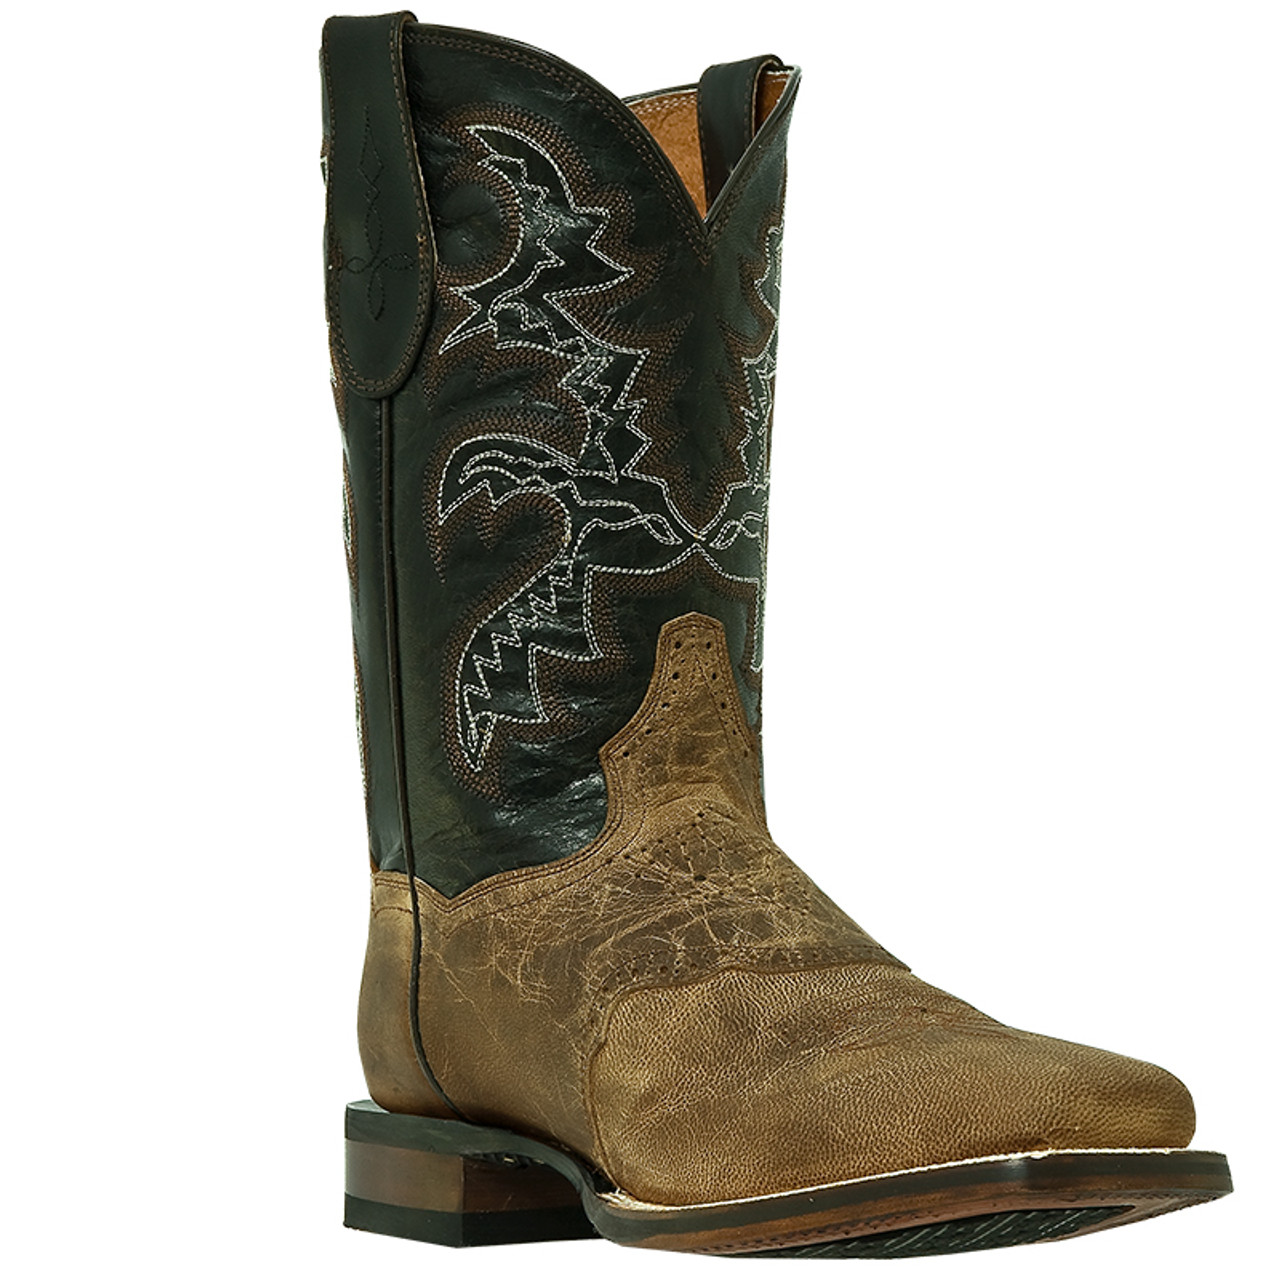 6d72a8dcc73 Men's Dan Post Cowboy Certified Square Toe Cowboy Boot with Leather/Rubber  Sole